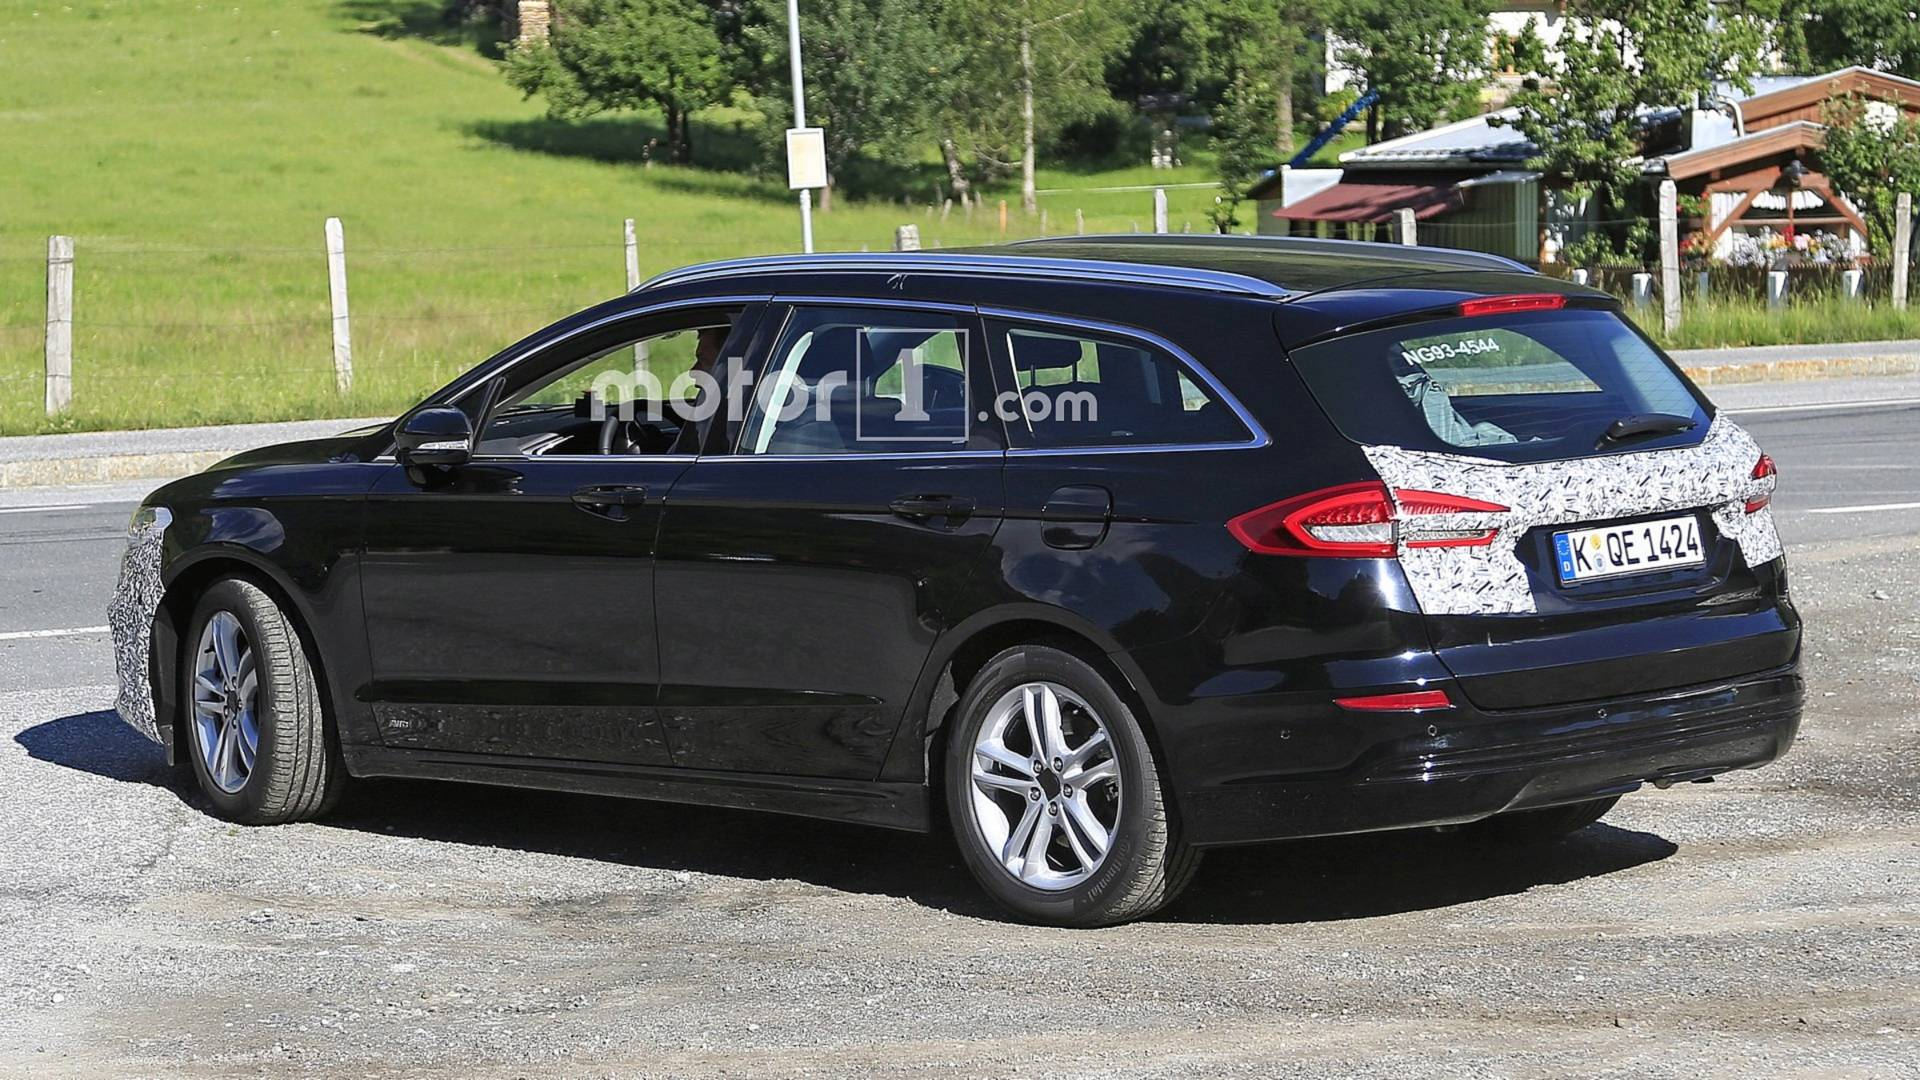 2018 - [Ford] Mondeo/Fusion V - Page 2 Ford-mondeo-wagon-facelift-spy-photo